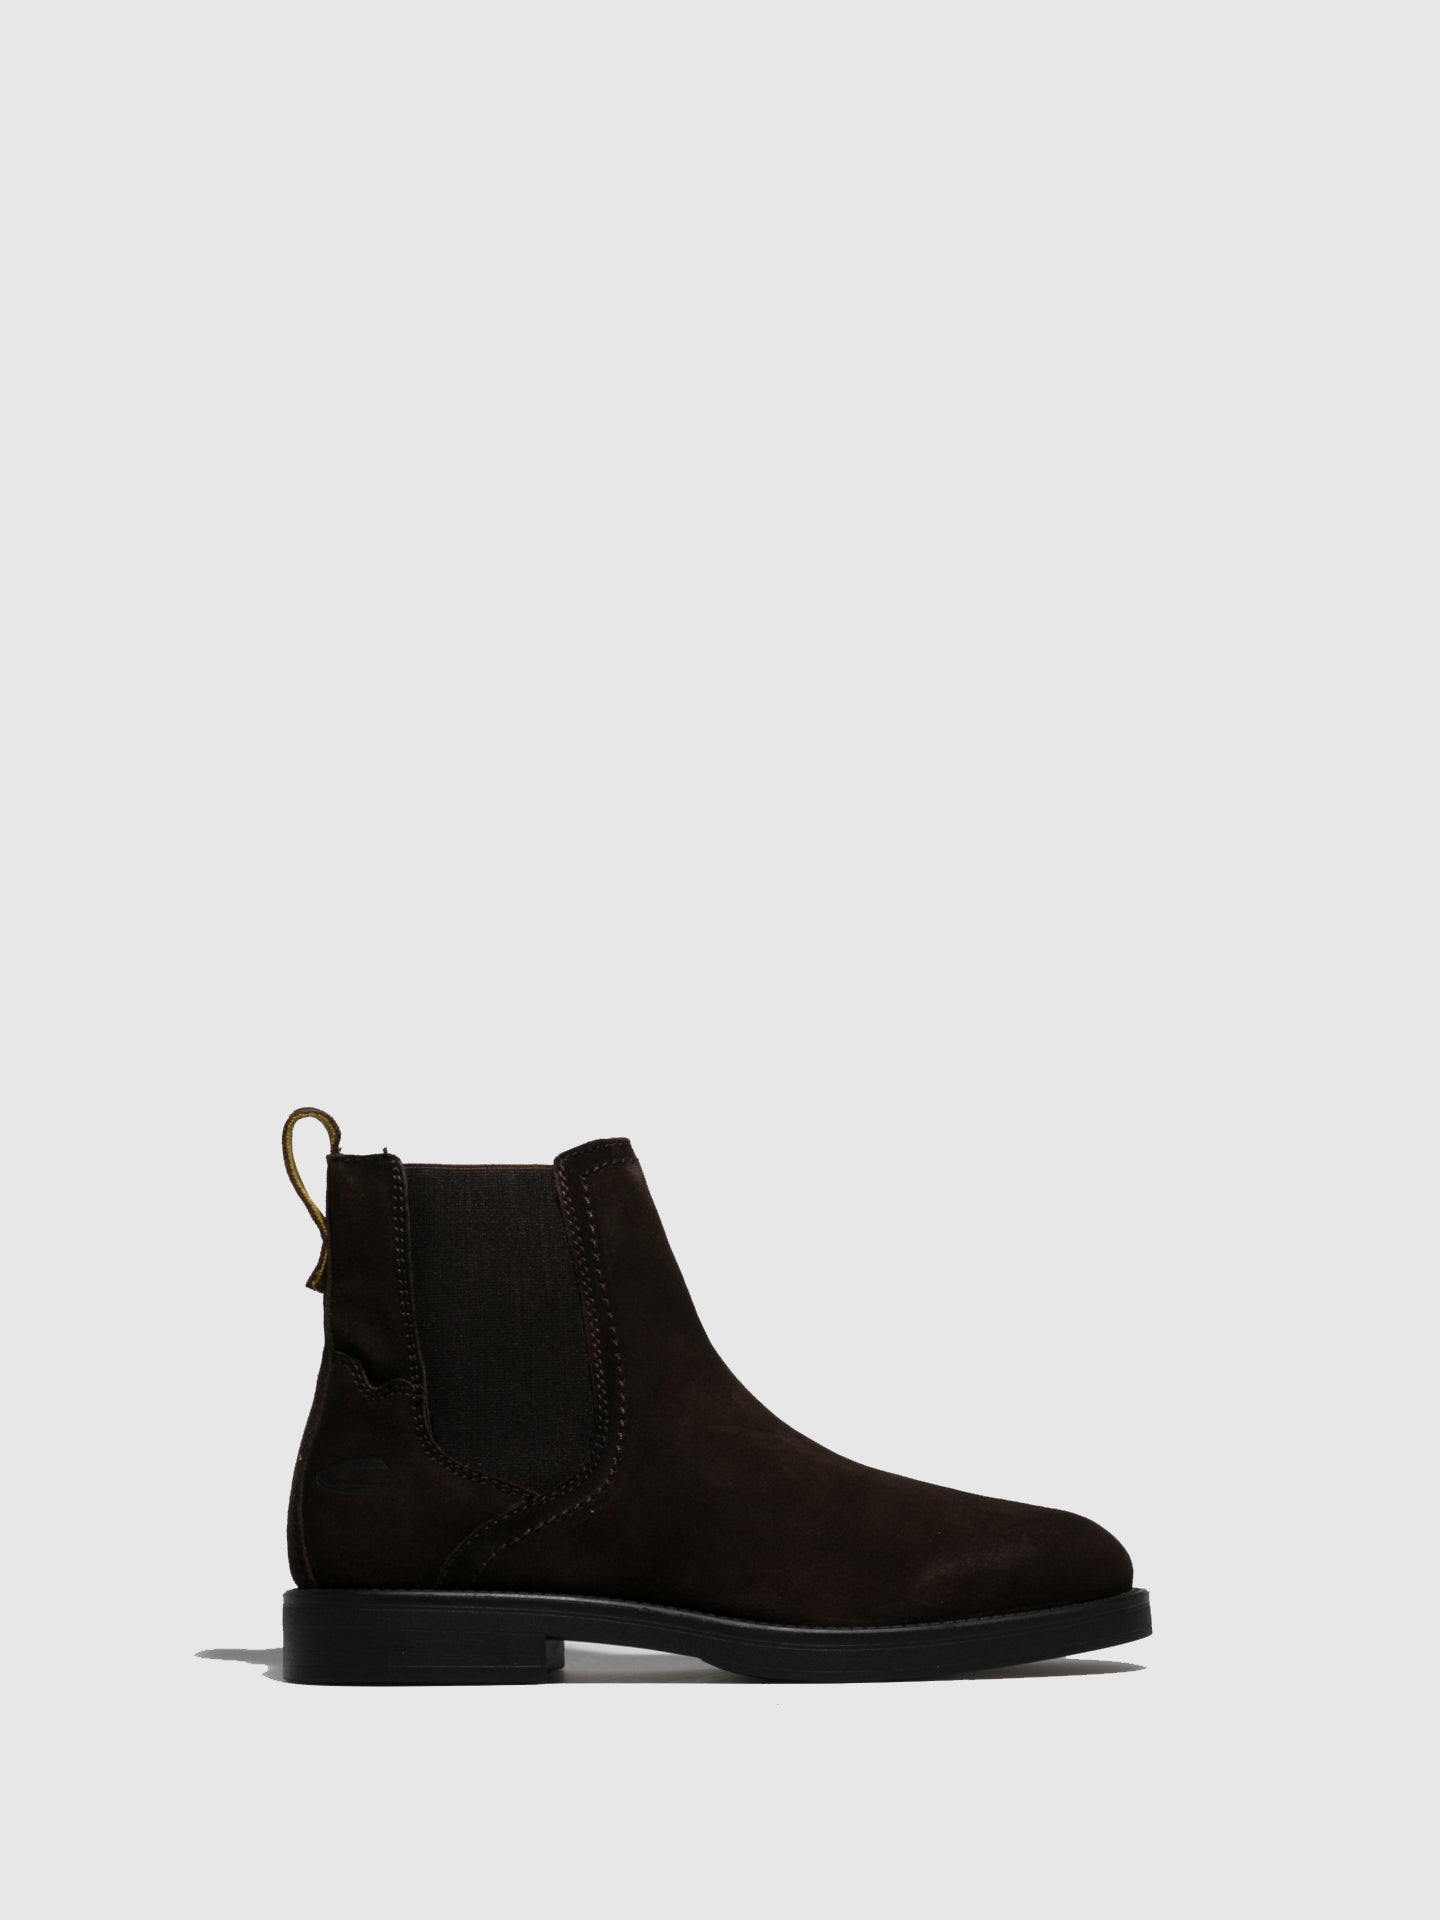 Camel Active Brown Suede Chelsea Boots